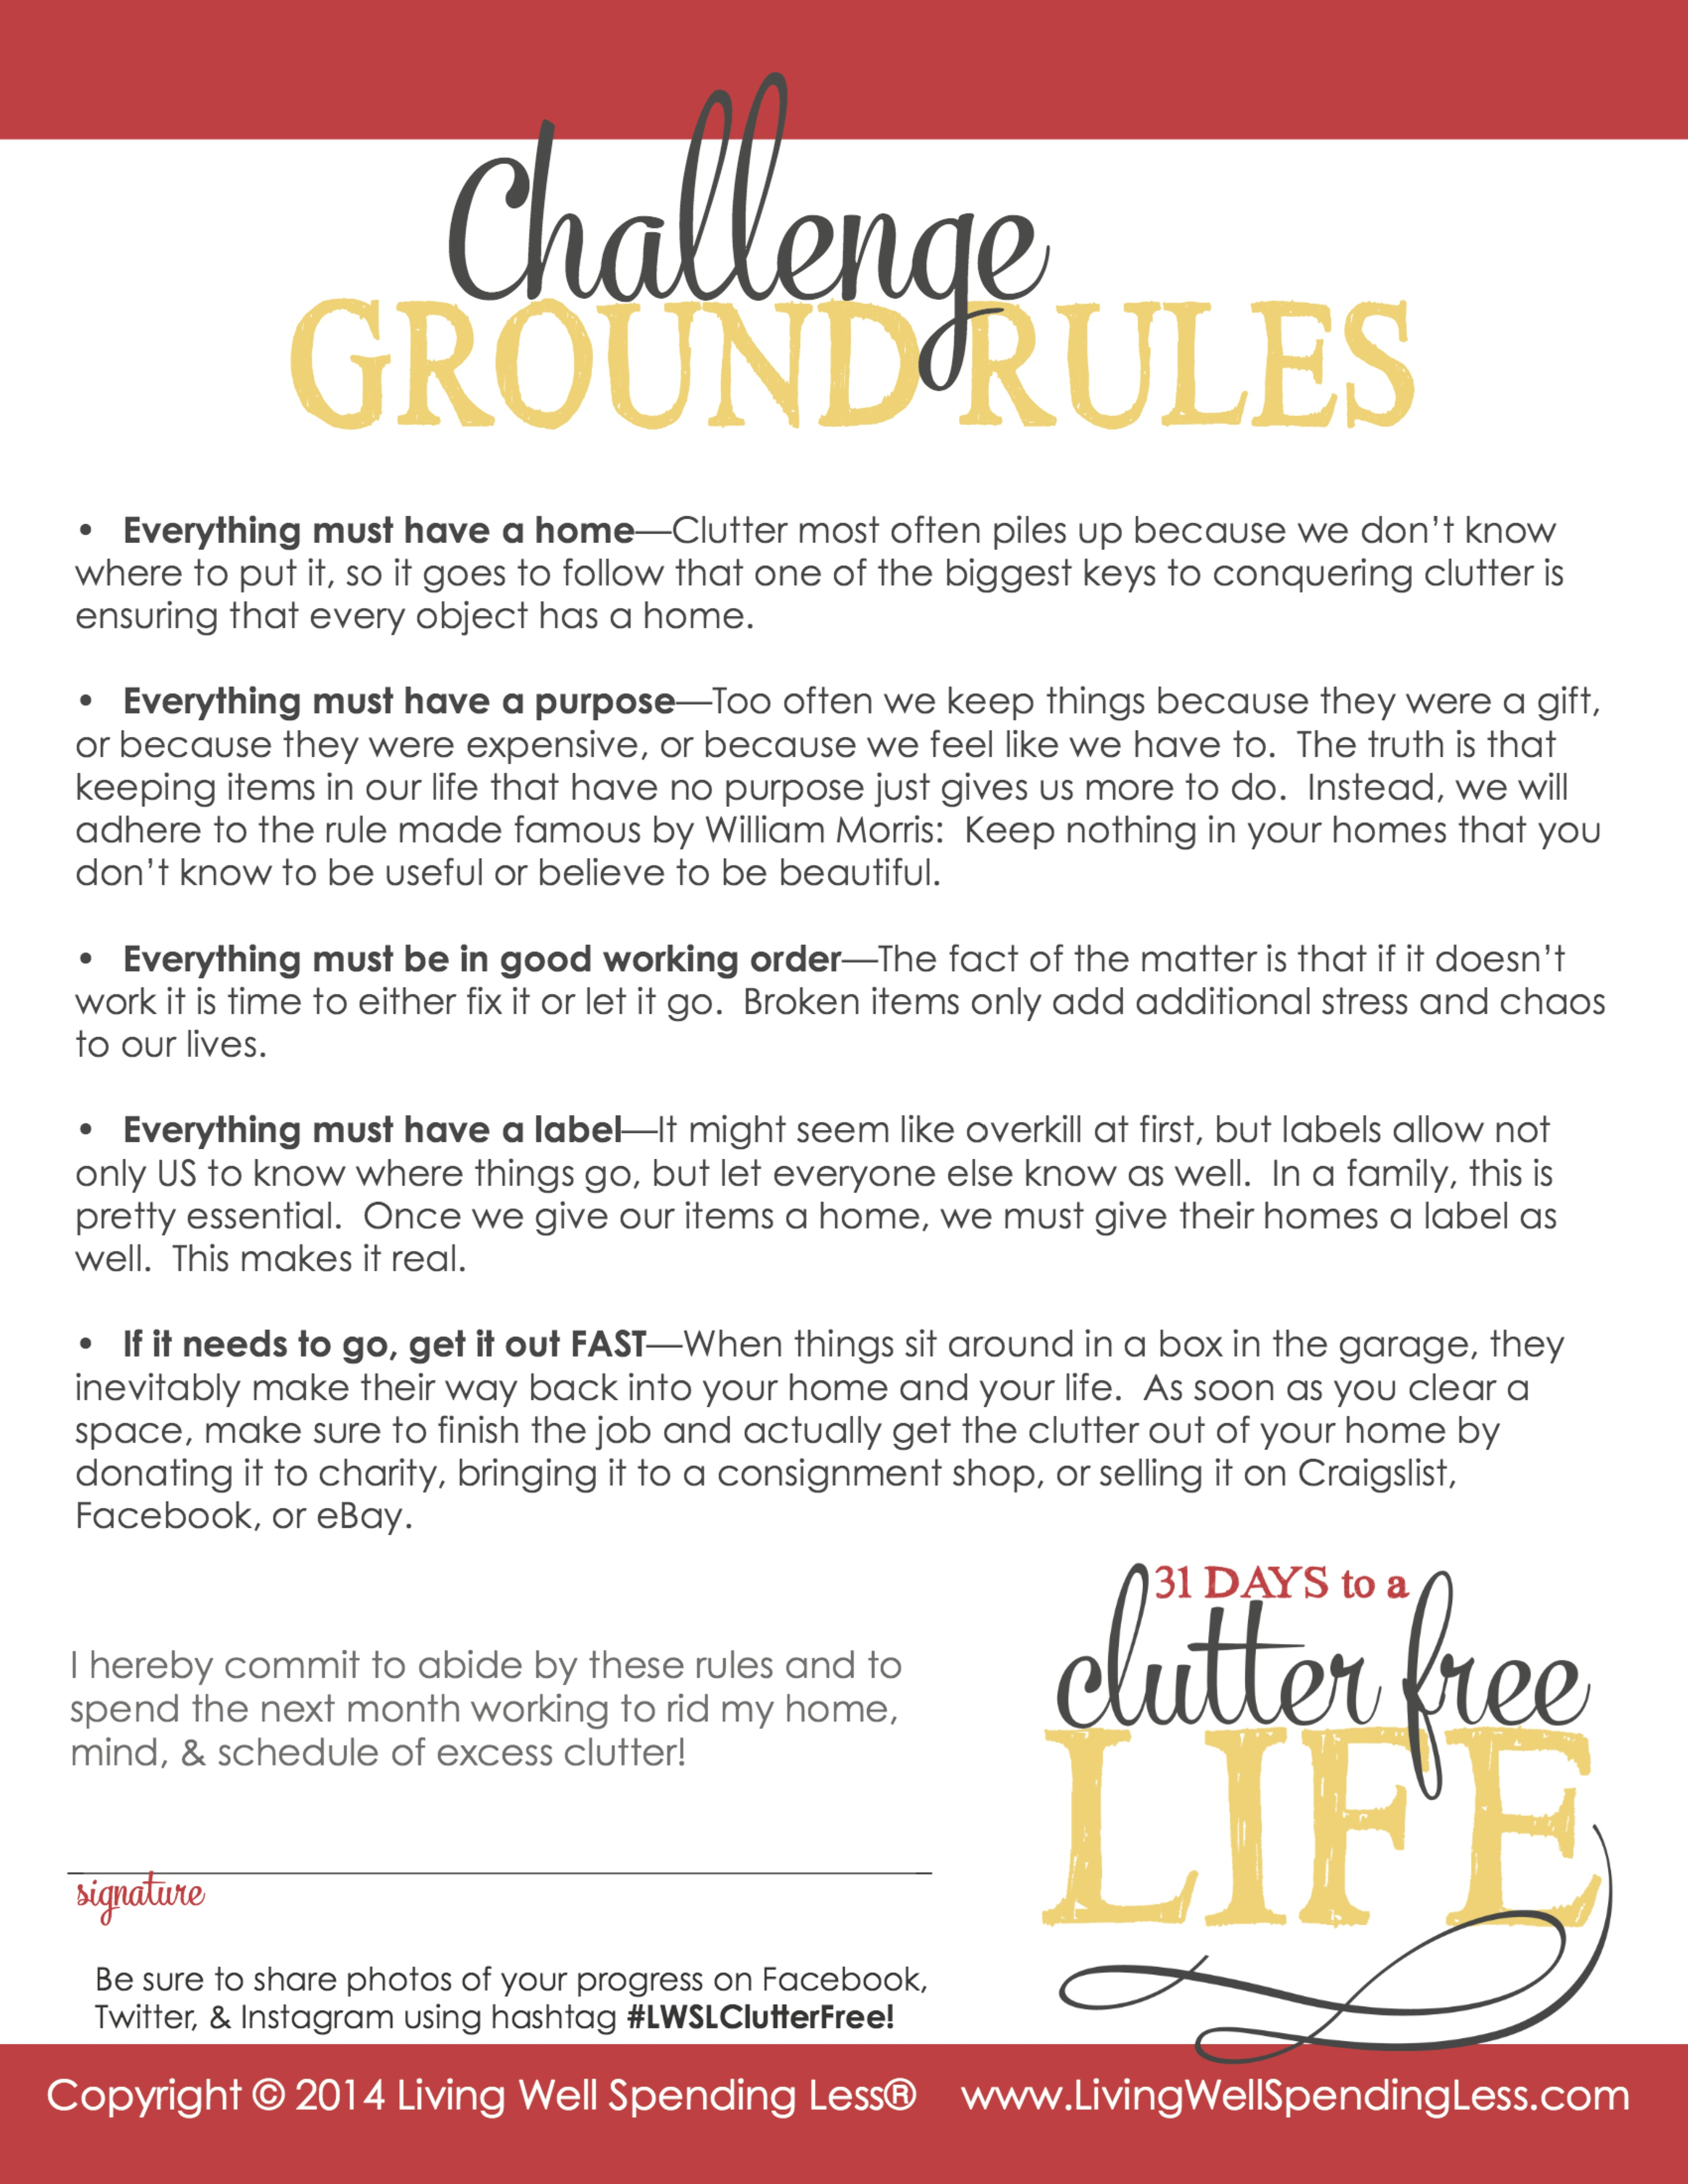 Days to a Clutter Free Life Challenge | Printable Ground Rules